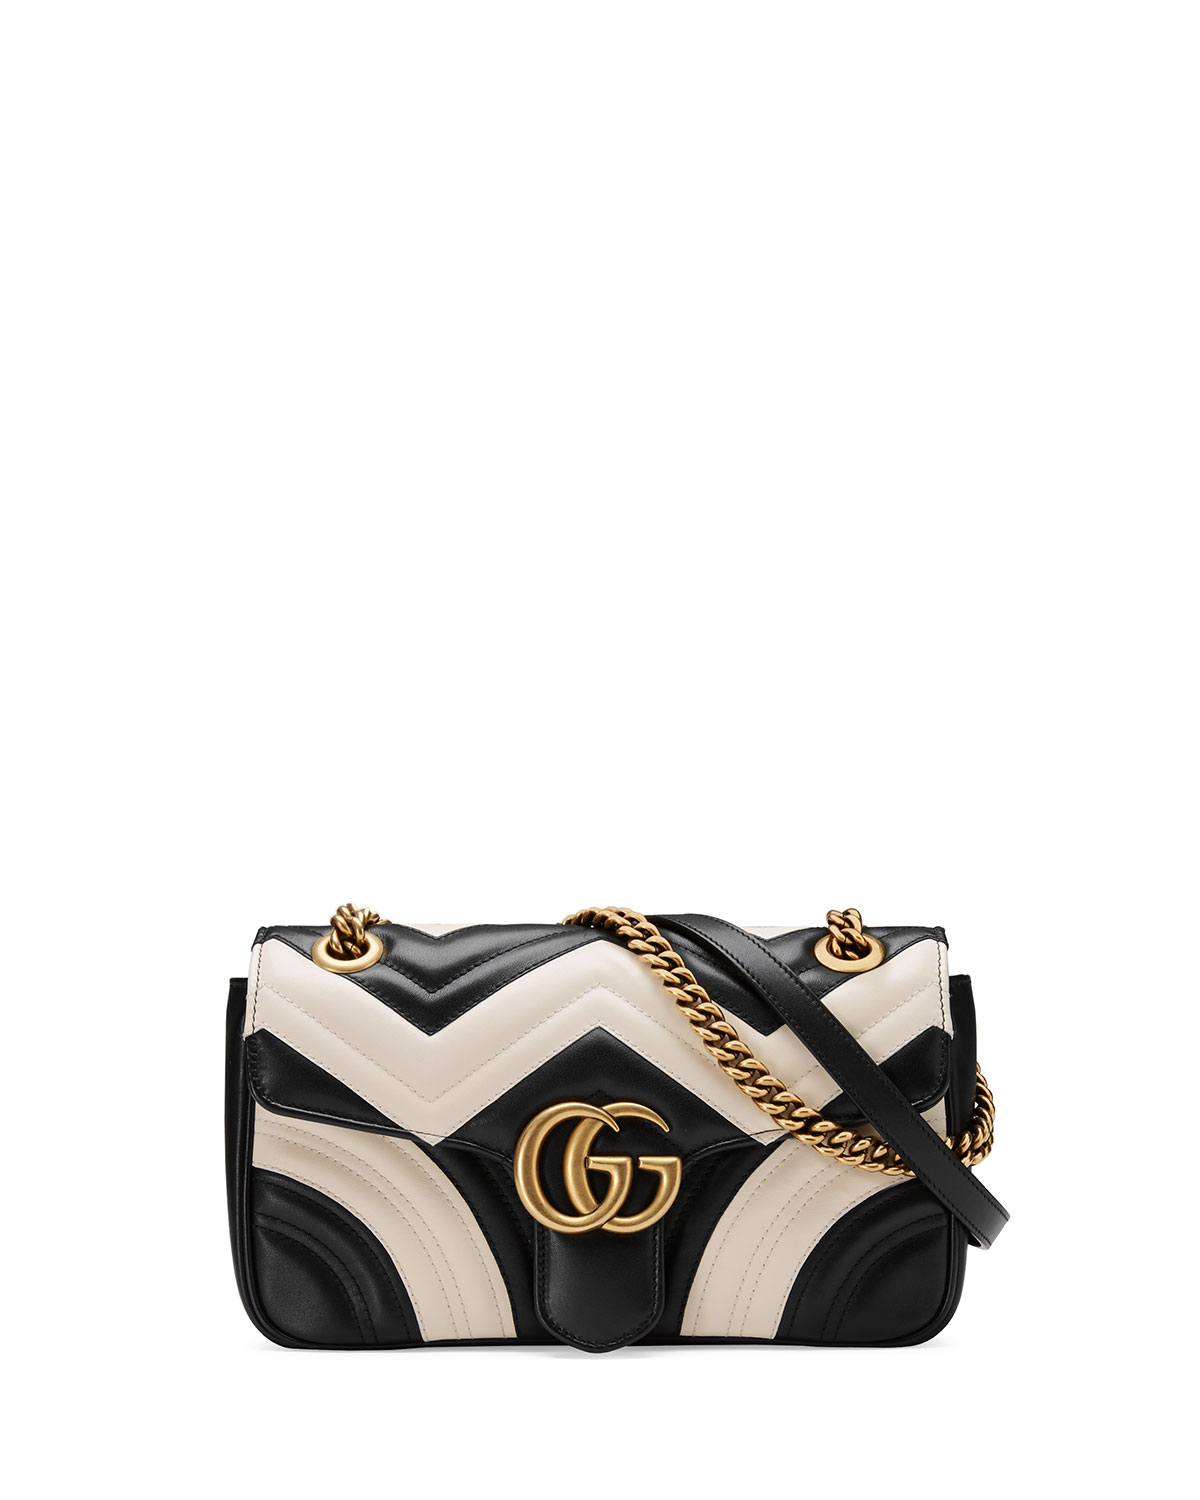 b2be69846c75ca Gucci GG Marmont Small Quilted Shoulder Bag, Black/White | Neiman Marcus